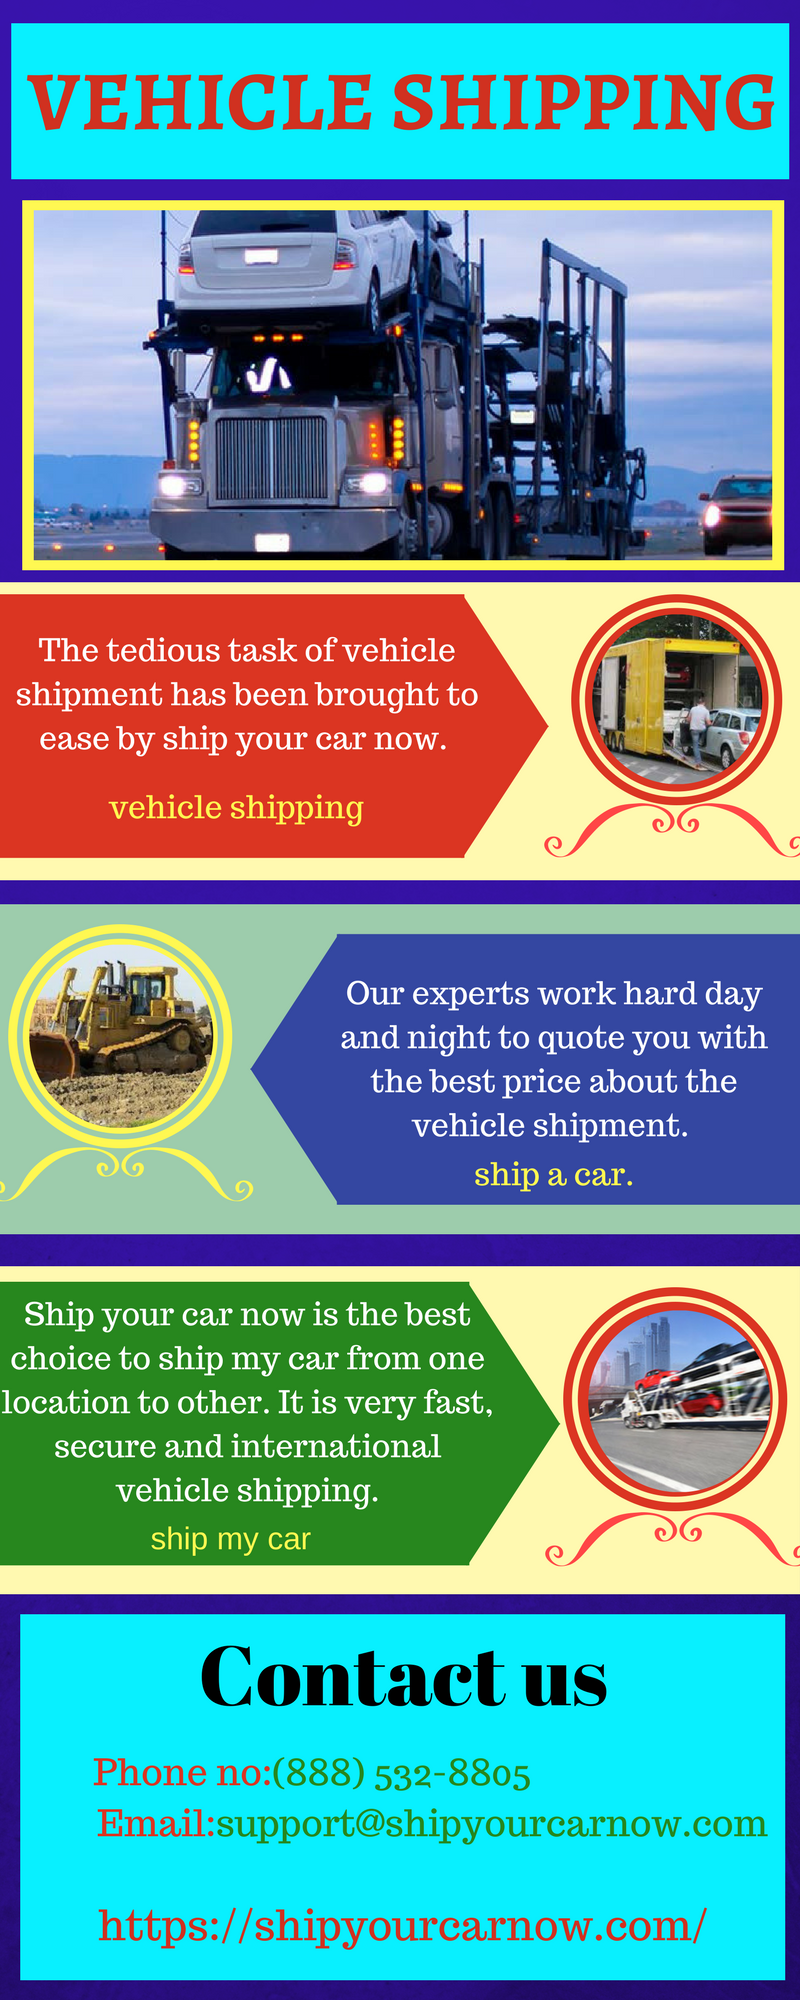 Pin by shipyourcarnow on The transportation to Ship a car